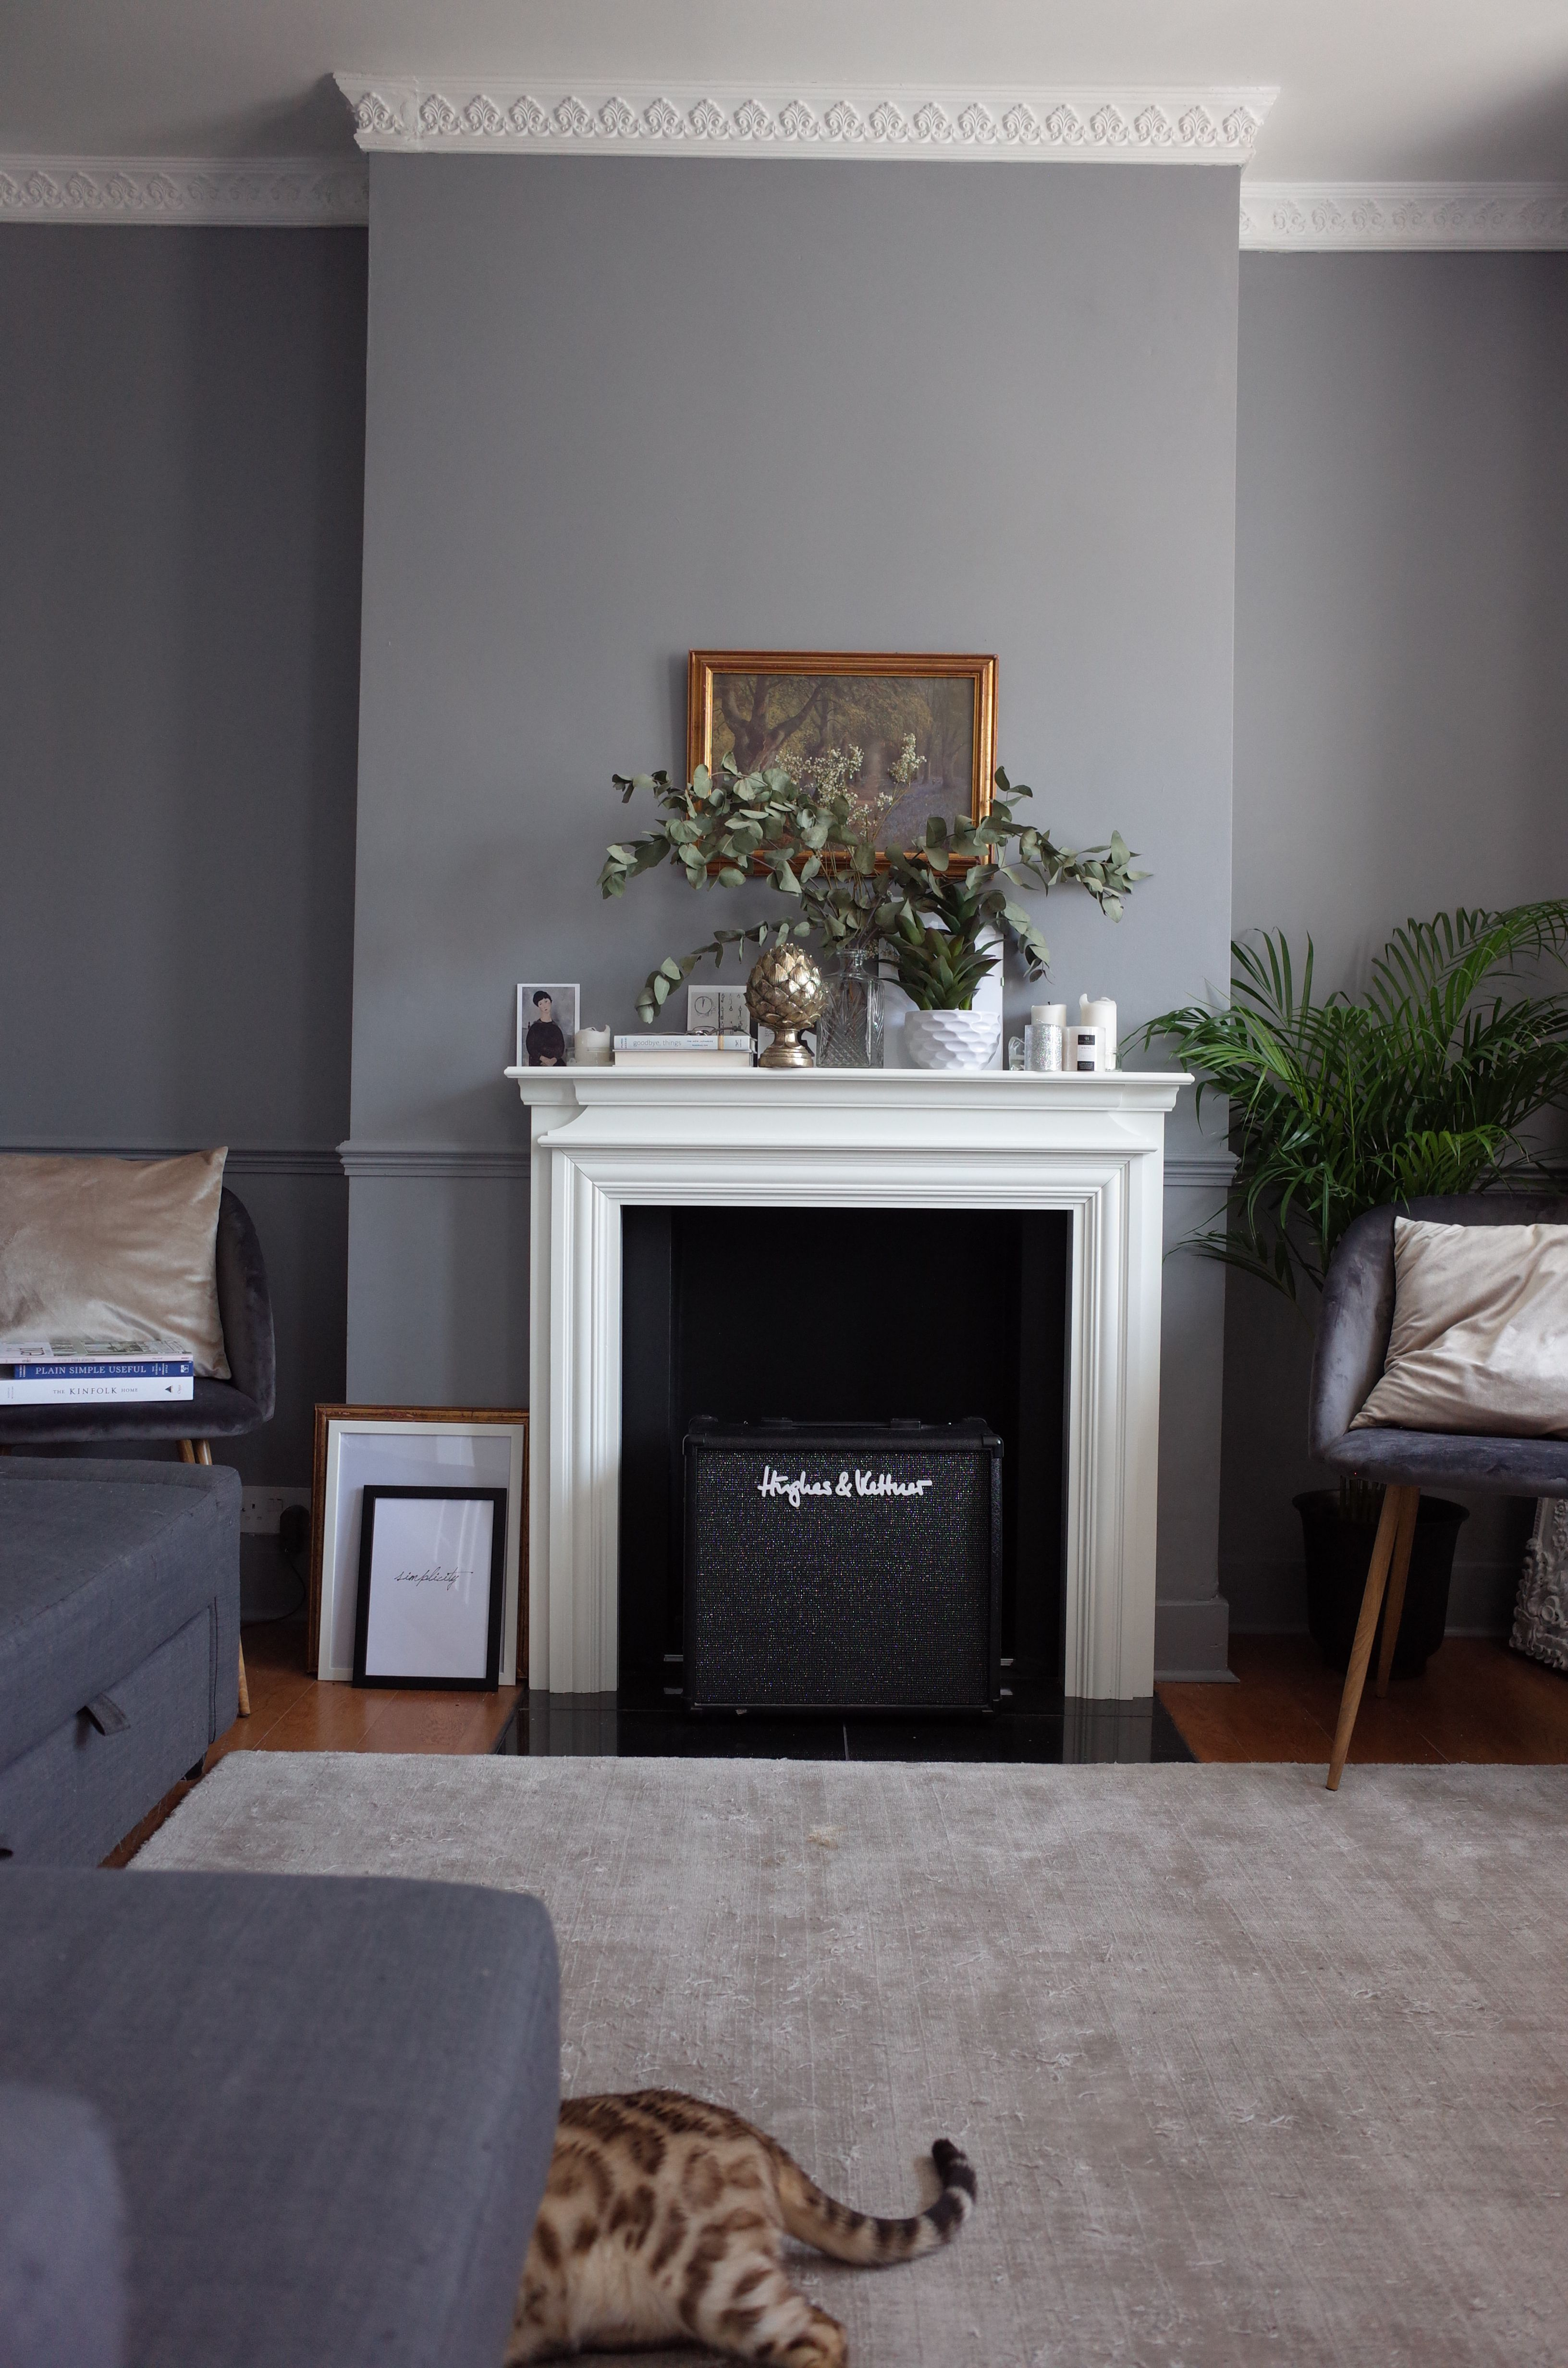 Grey Living Room Victorian House Cornice Fireplace Mantel In 2020 Living Room Grey Dining Room Victorian Living Room With Fireplace